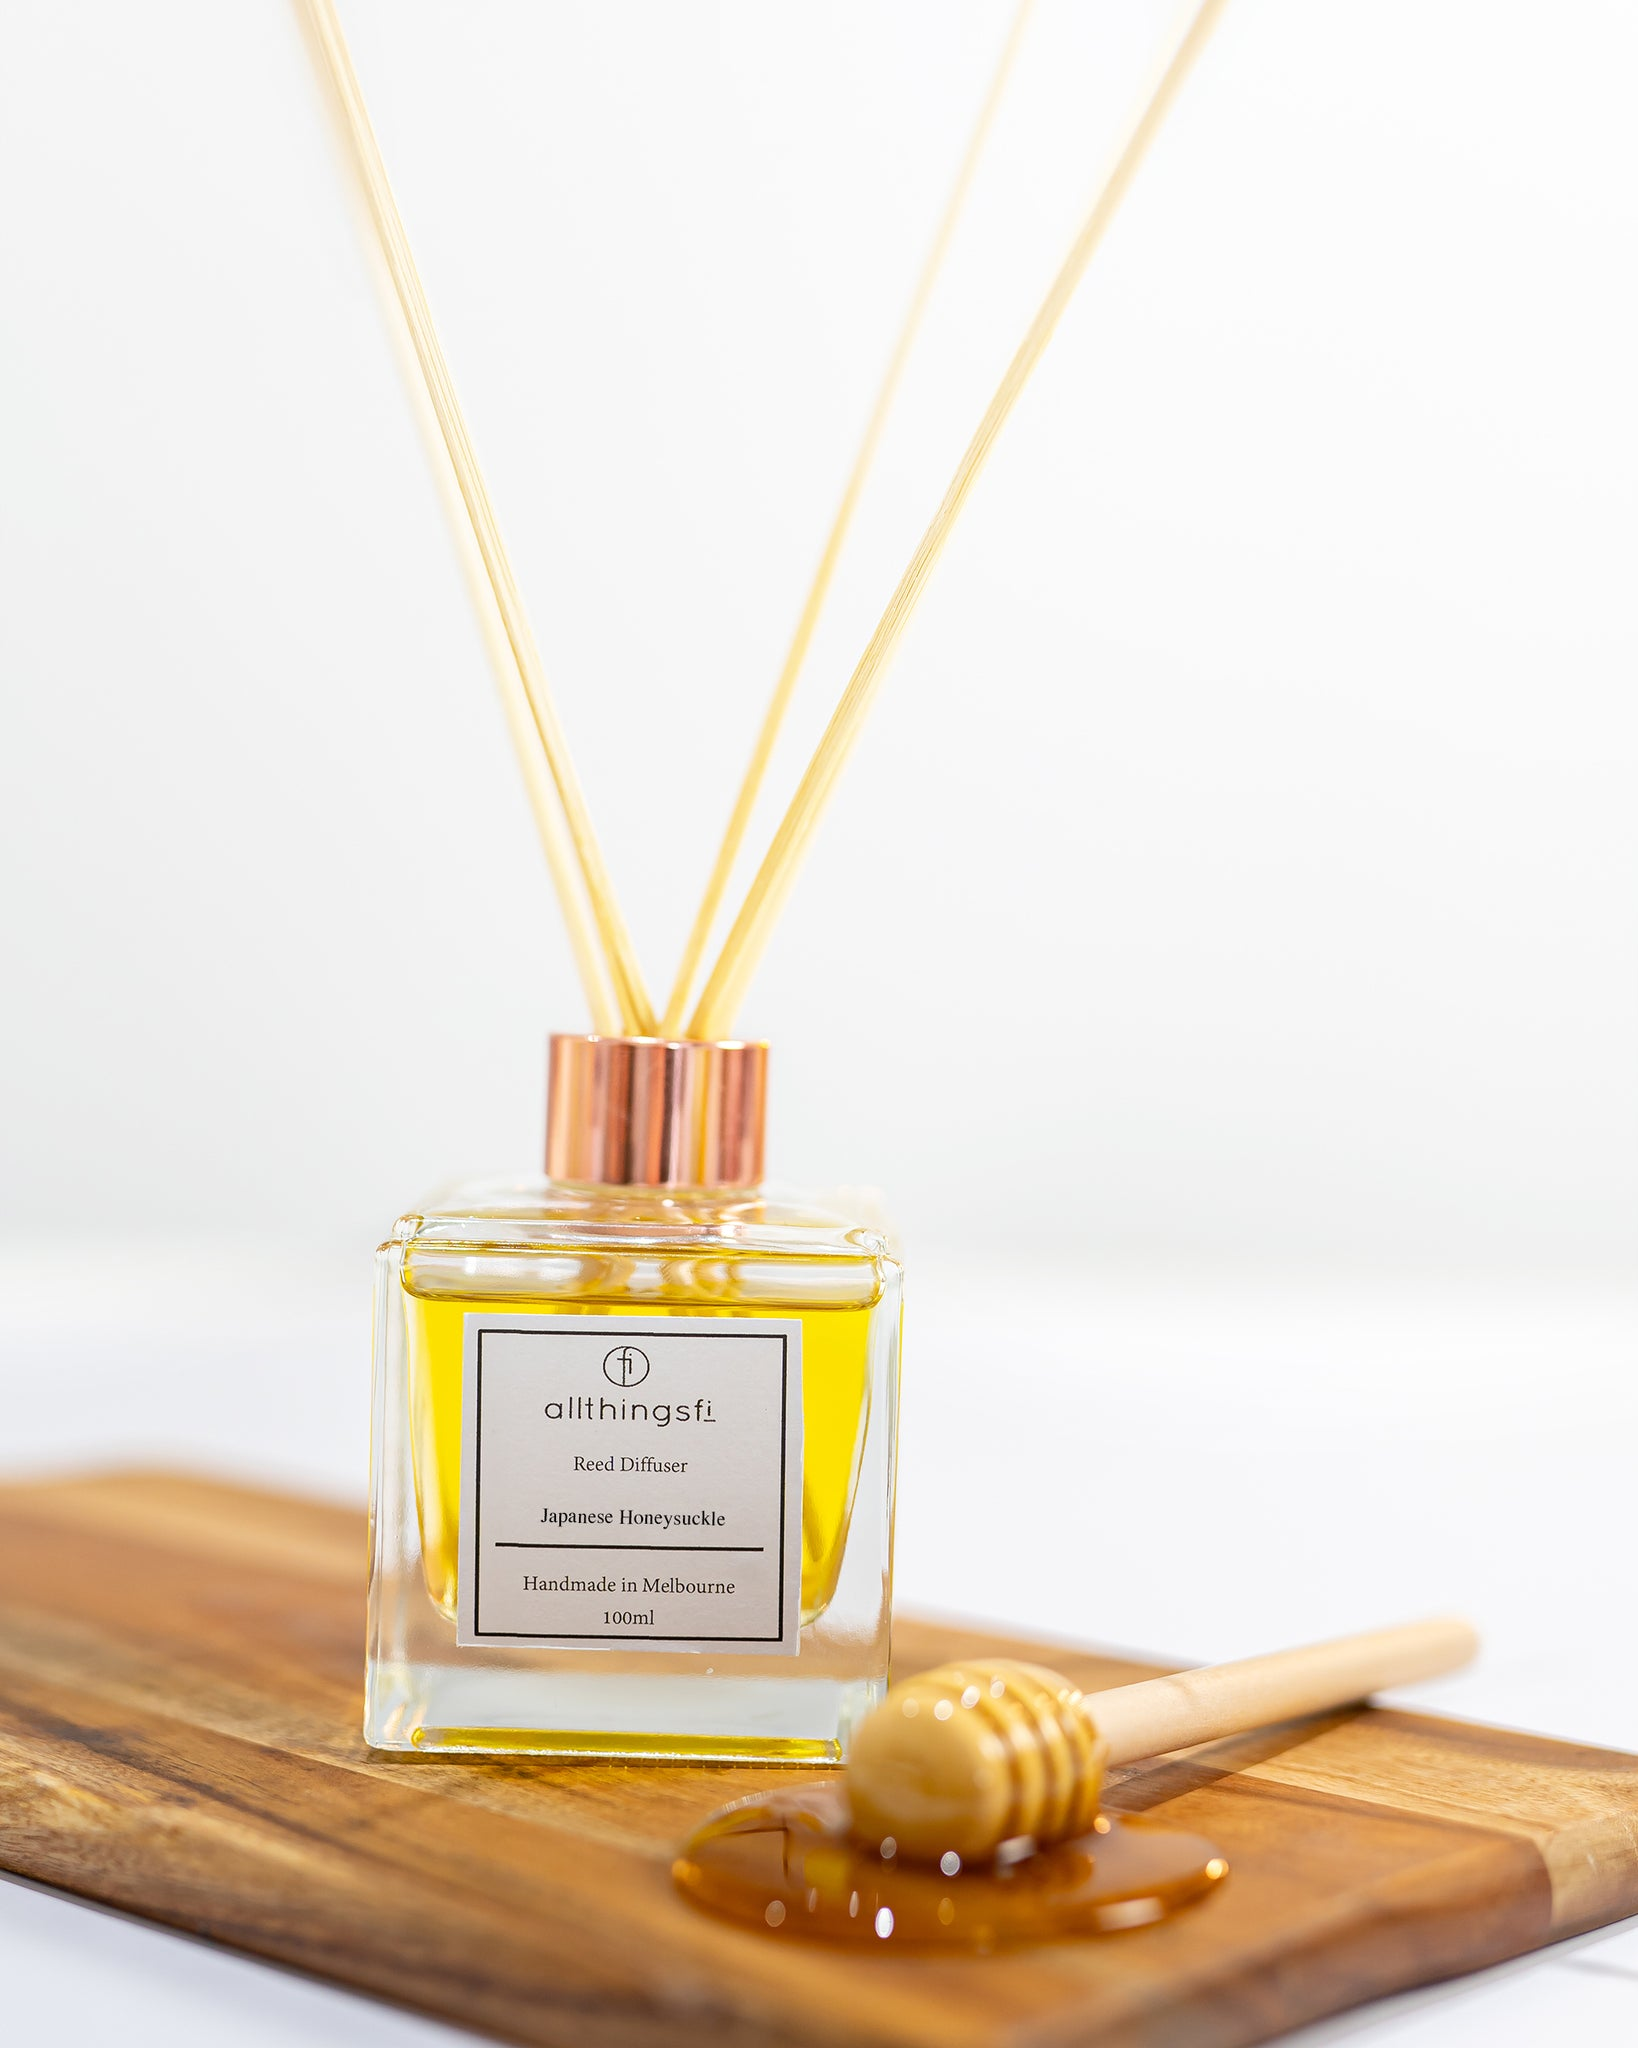 Reed diffuser - Japanese Honeysuckle